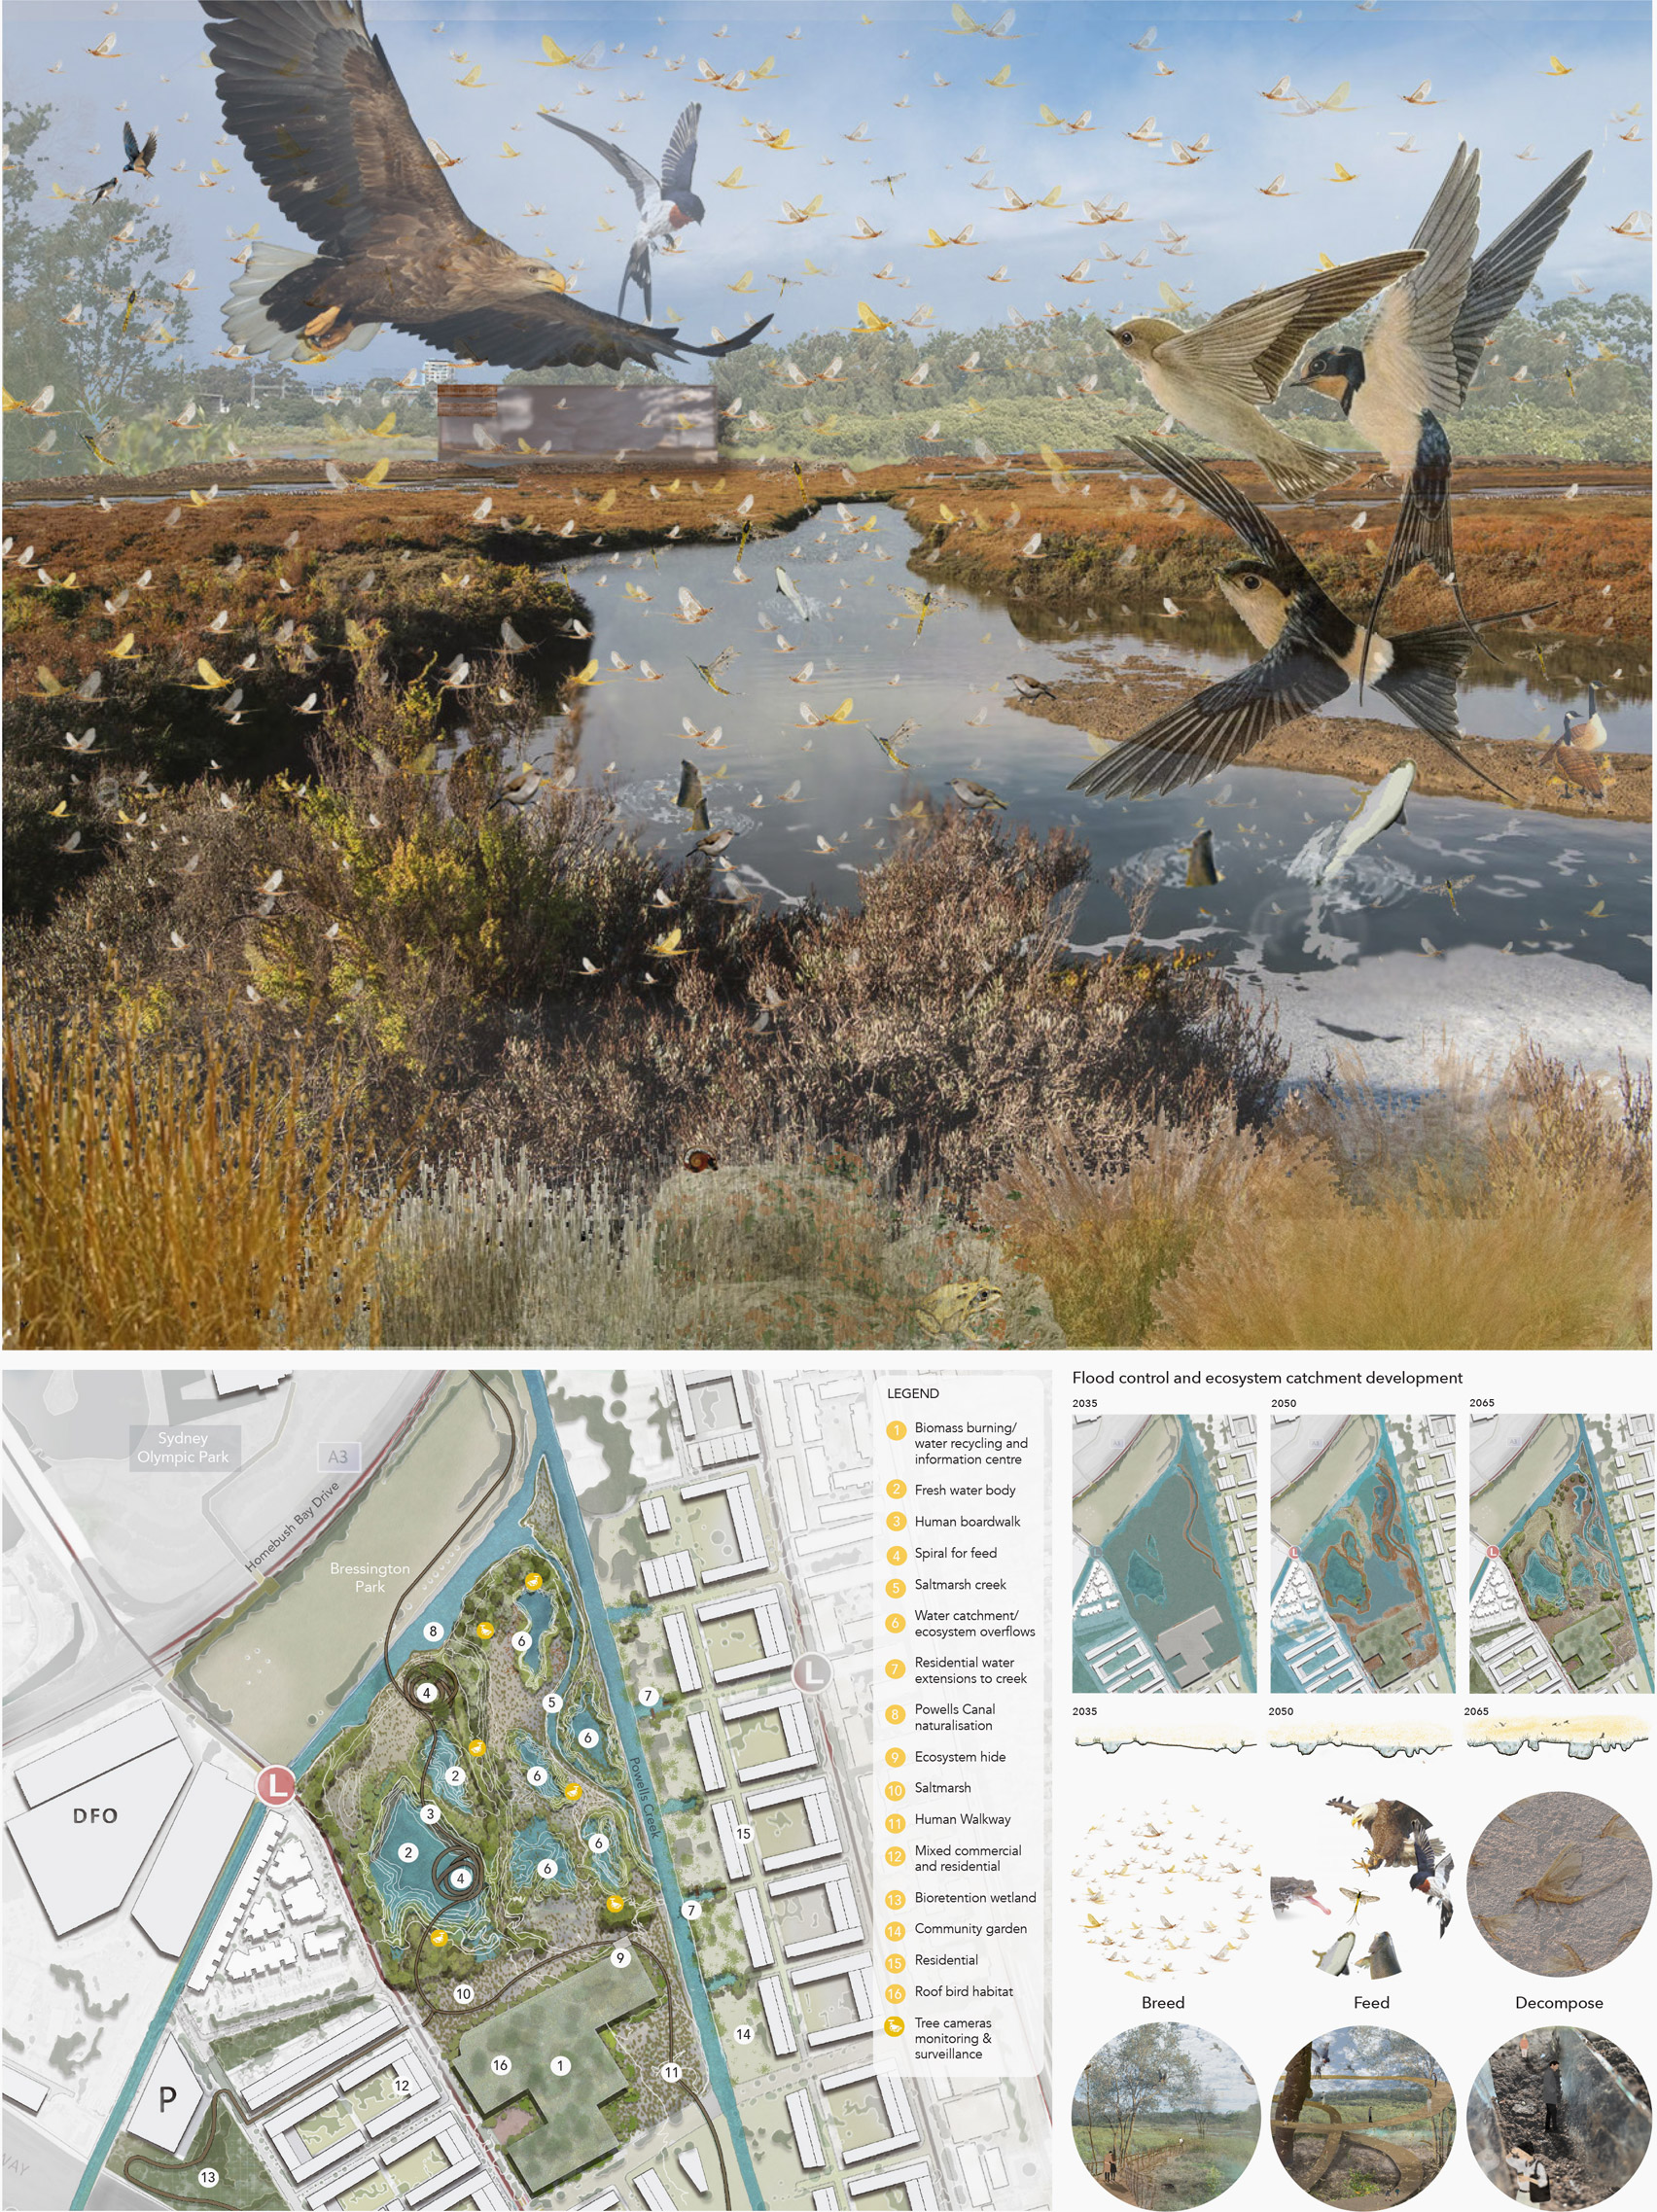 Landscape architecture drawings by UNSW Sydney student Ranine Hamed